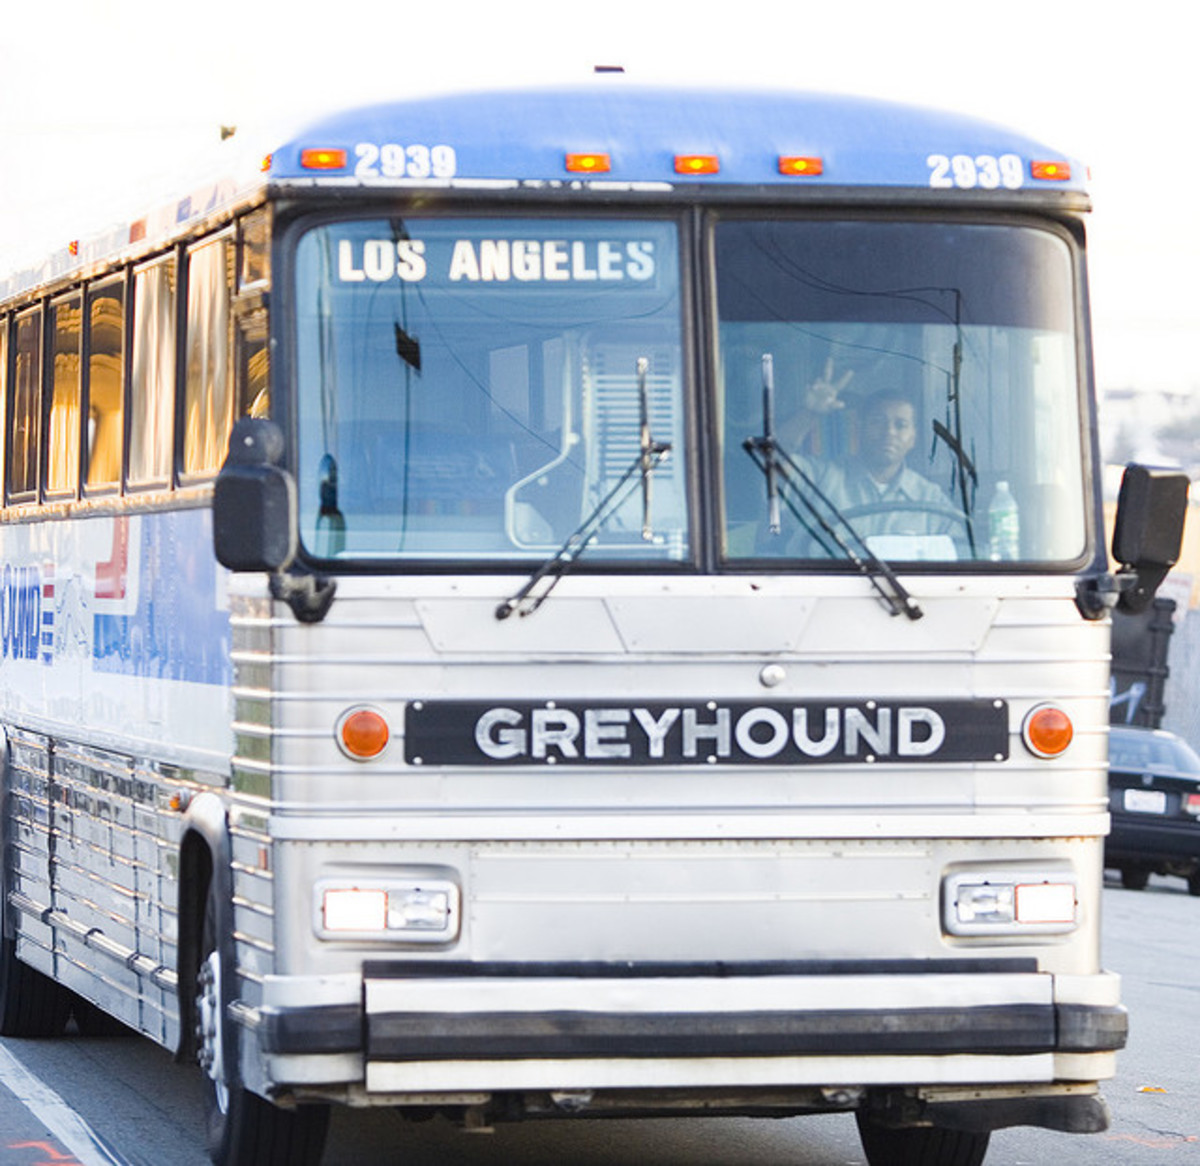 Greyhound Buses are a familiar sight. Here the driver gives a friendly wave.